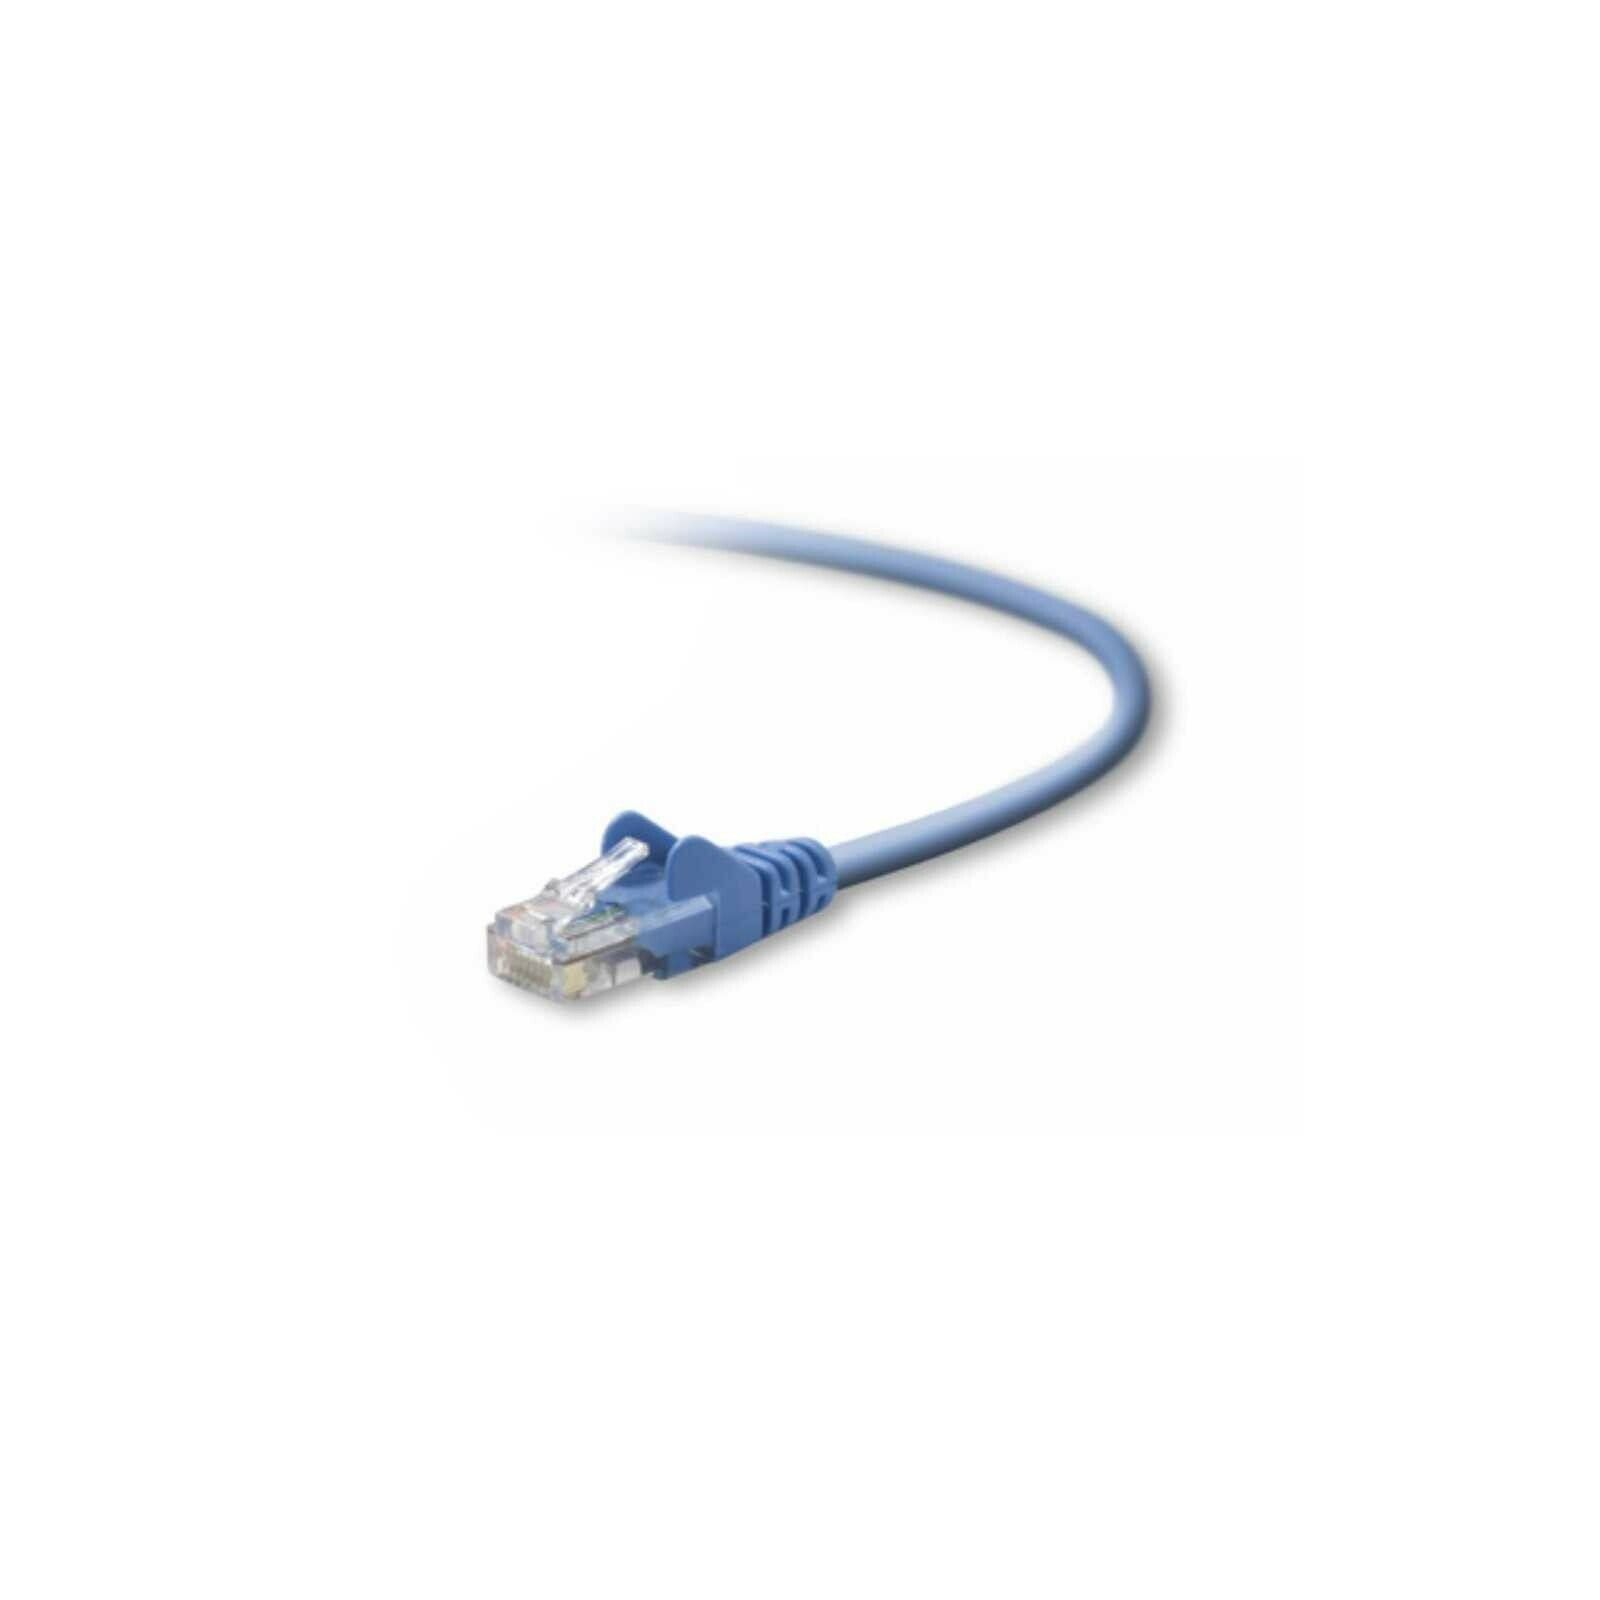 BELKIN CABLE PATCH NETWORK RJ45 CAT5E GOLD PLATED SNAGLESS 1M NEW A3L791B01MBLUS